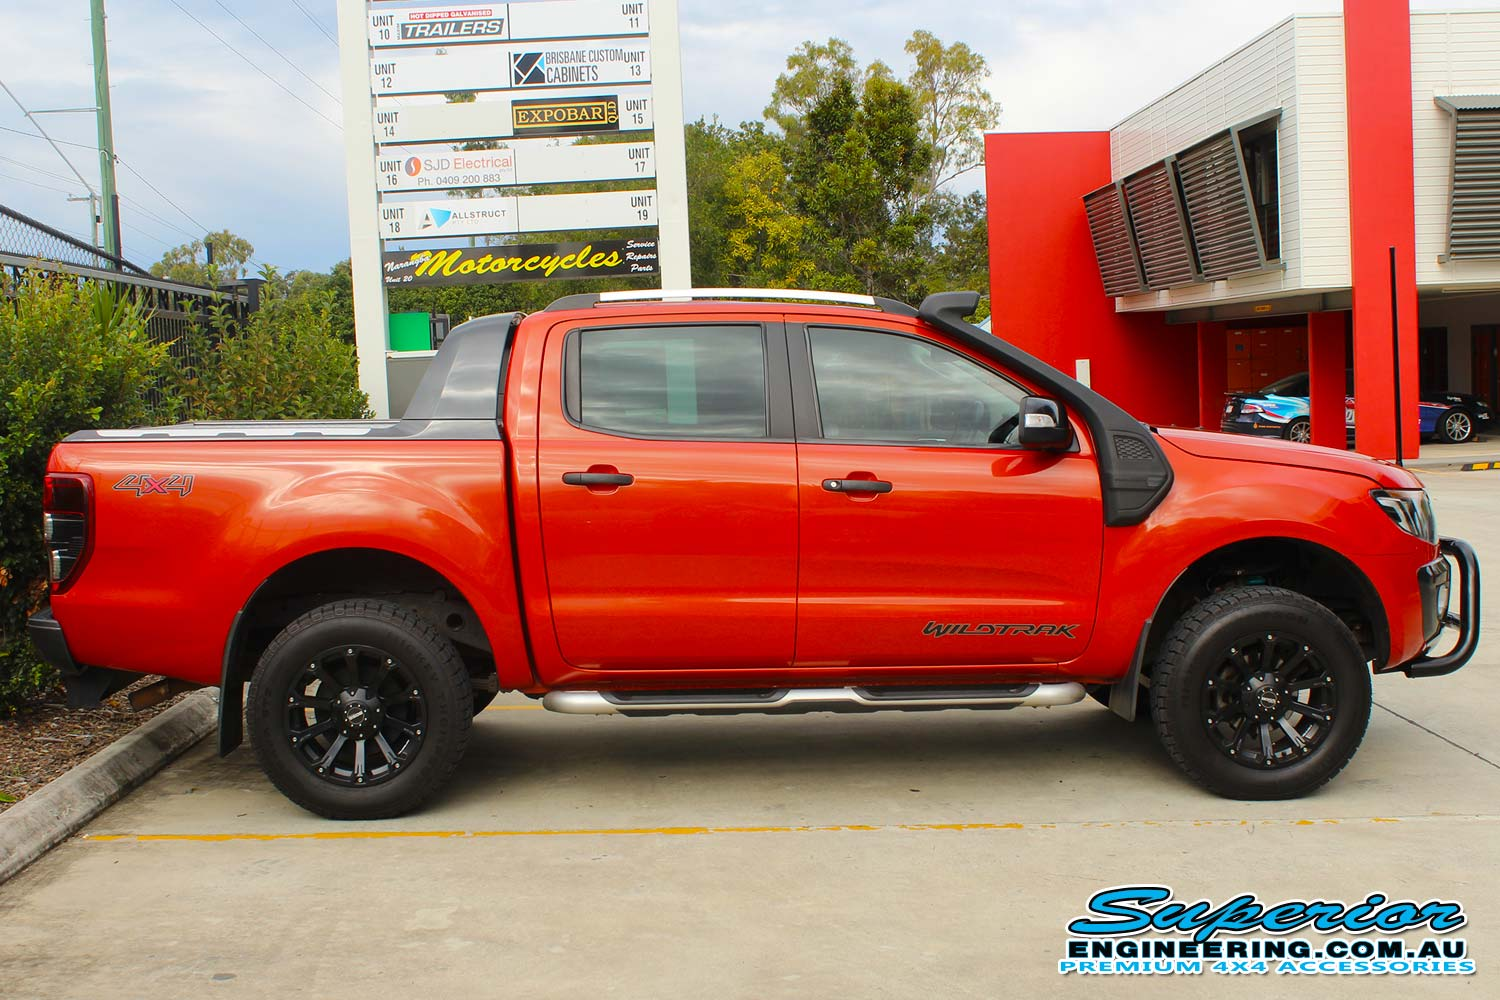 Right side view of an orange WildTrack Ford Ranger at the Deception Bay 4x4 Showroom fitted with a set of new Dobinsons coil springs